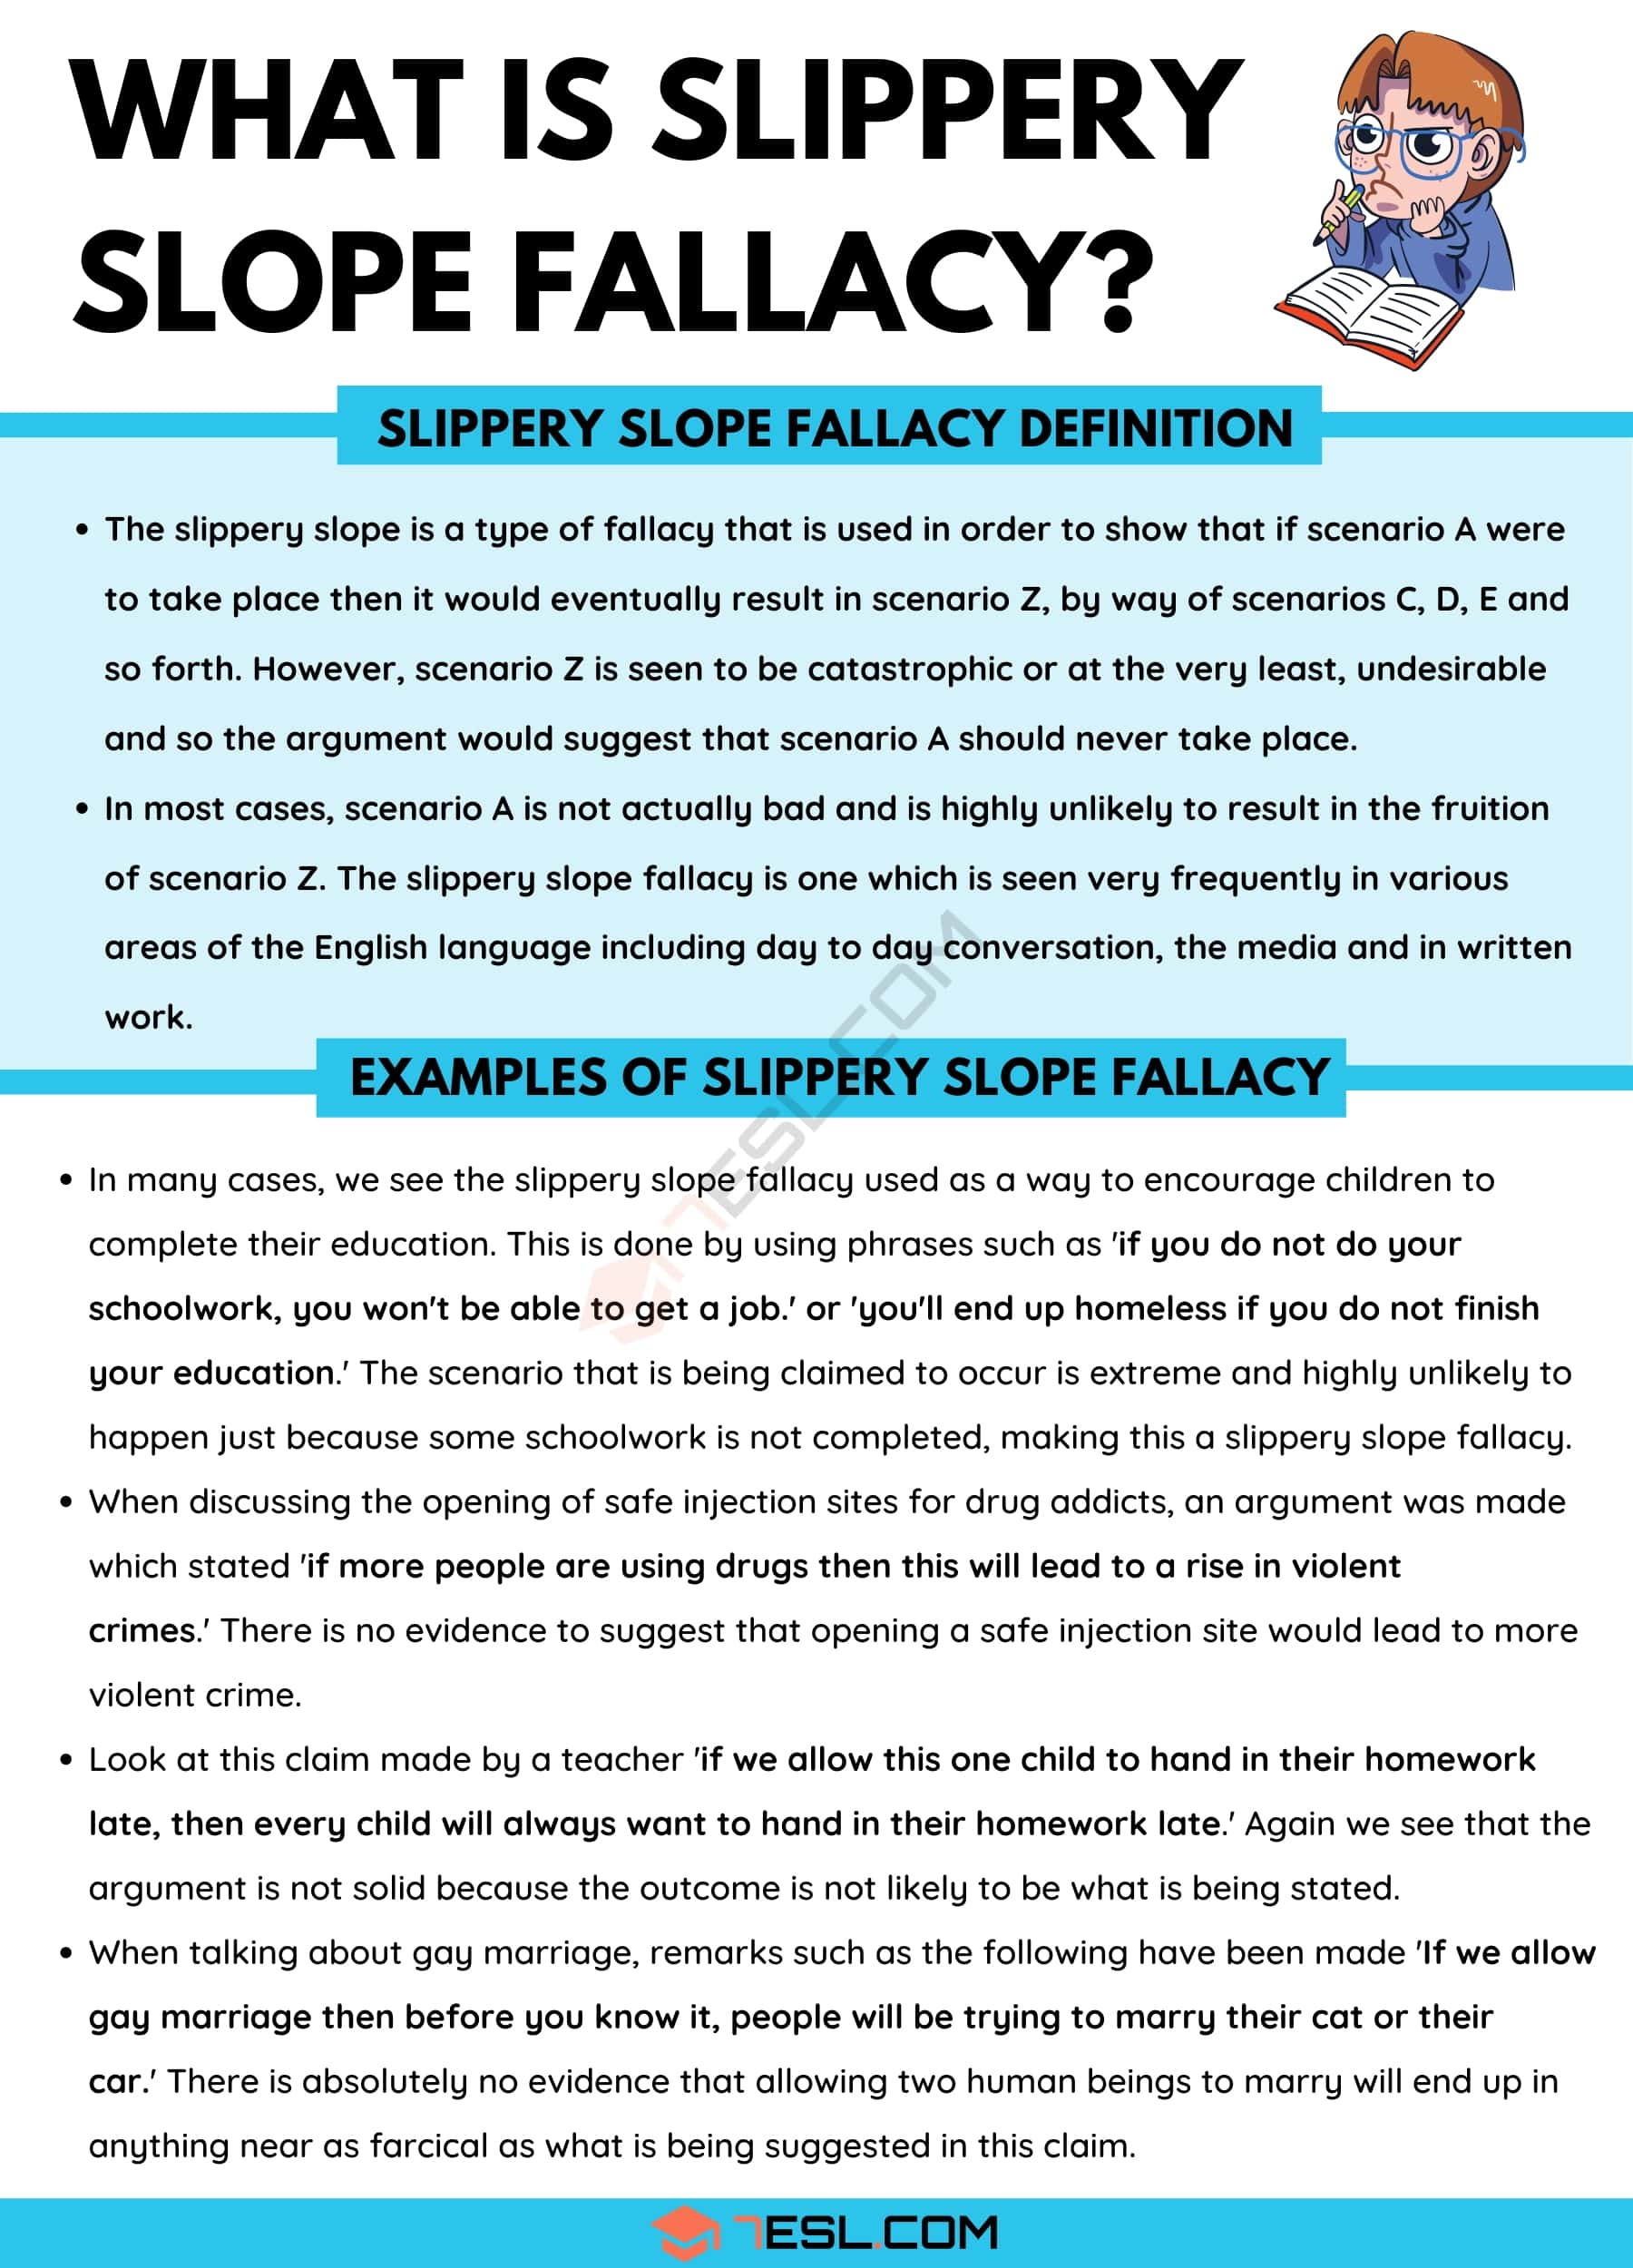 Slippery Slope Fallacy: Definition and Useful Examples of Slippery Slope Fallacy